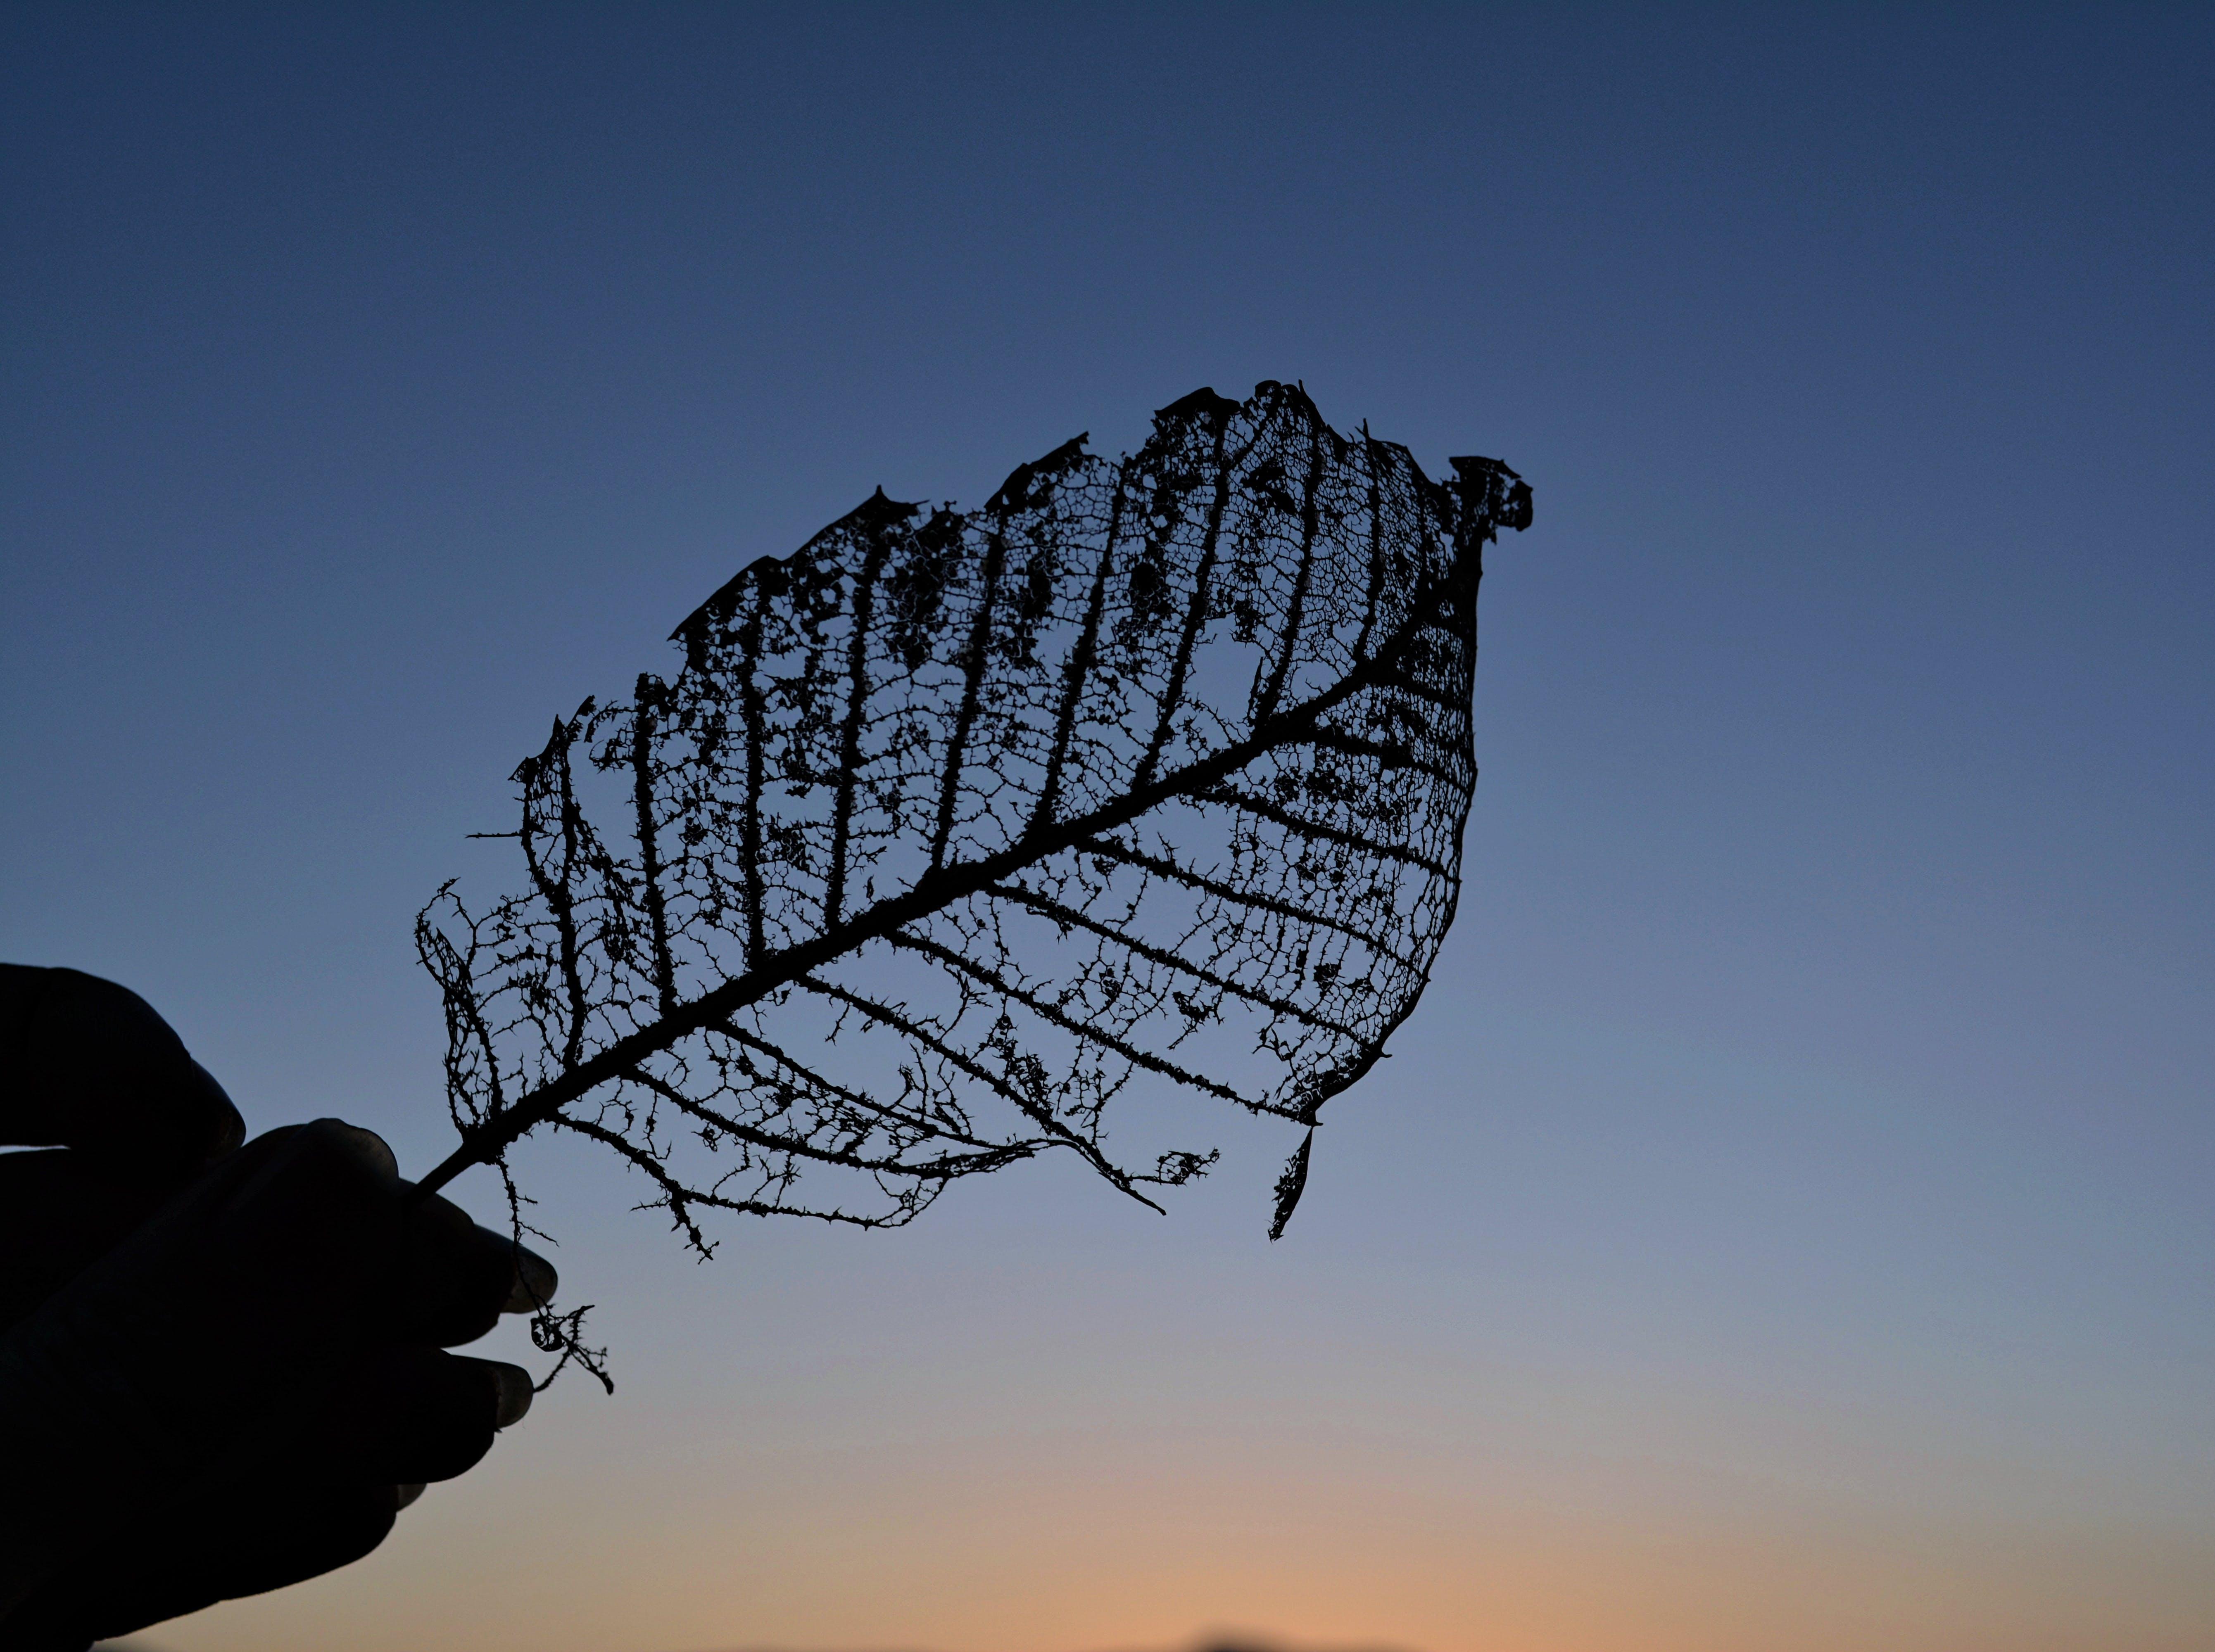 Silhouette of Dry Leaf